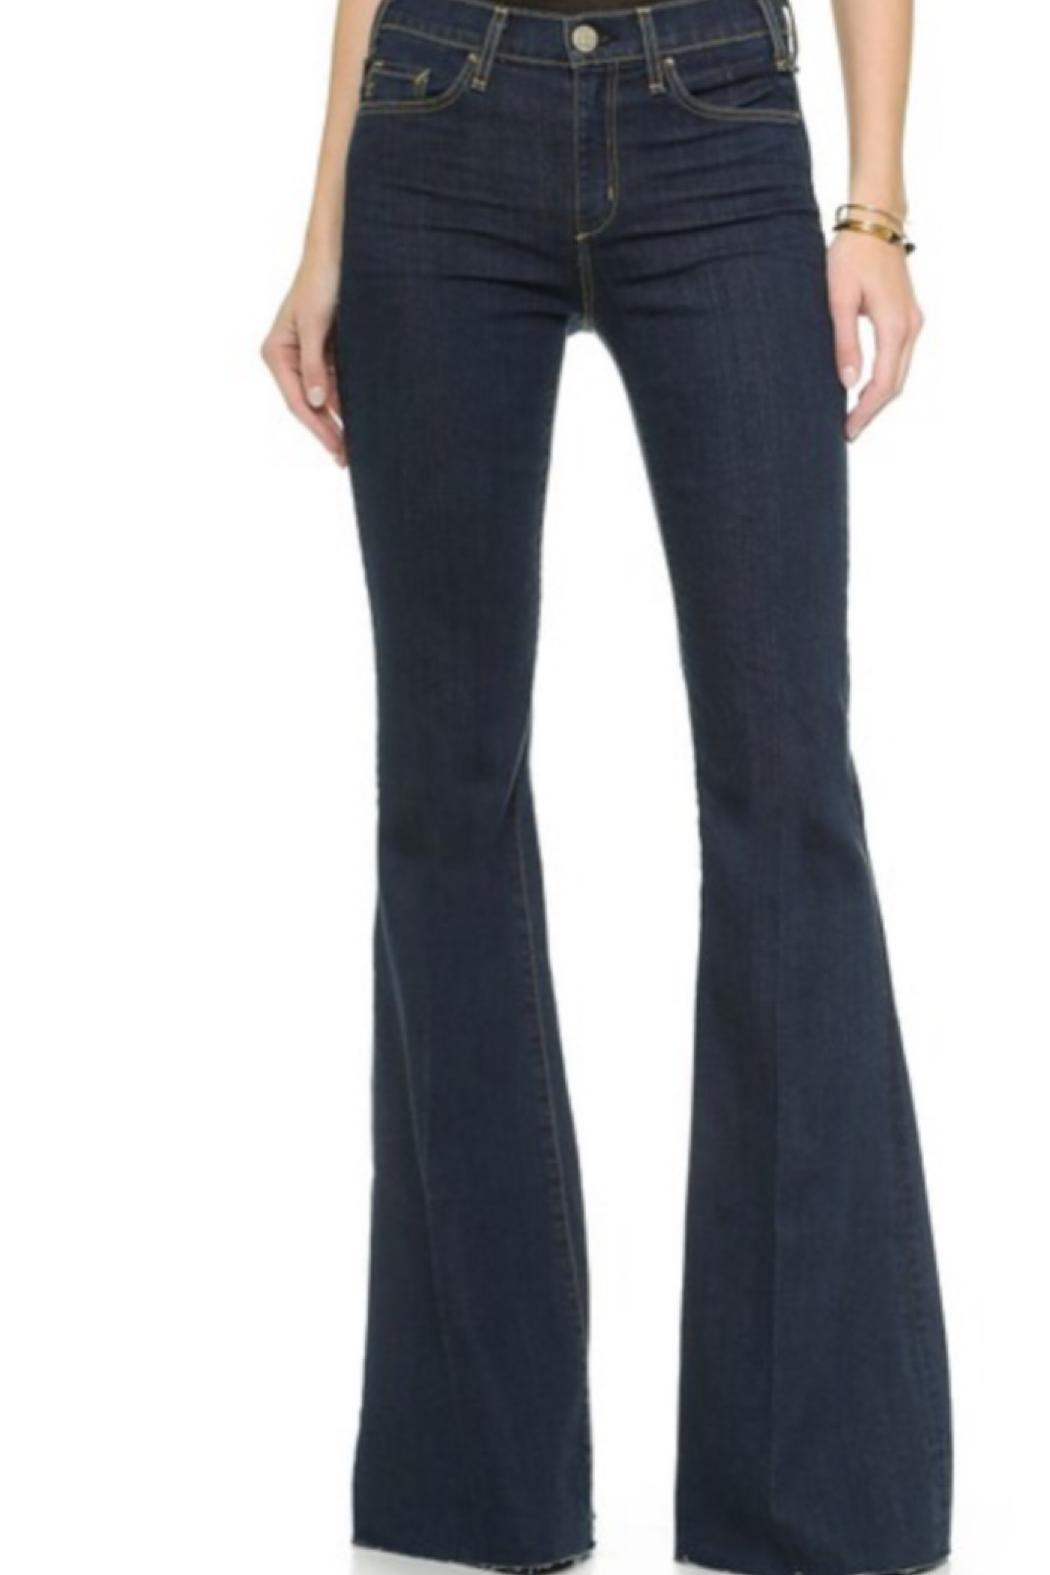 MCGUIRE DENIM Denim Flare Jeans from Germantown by On a Whim ...